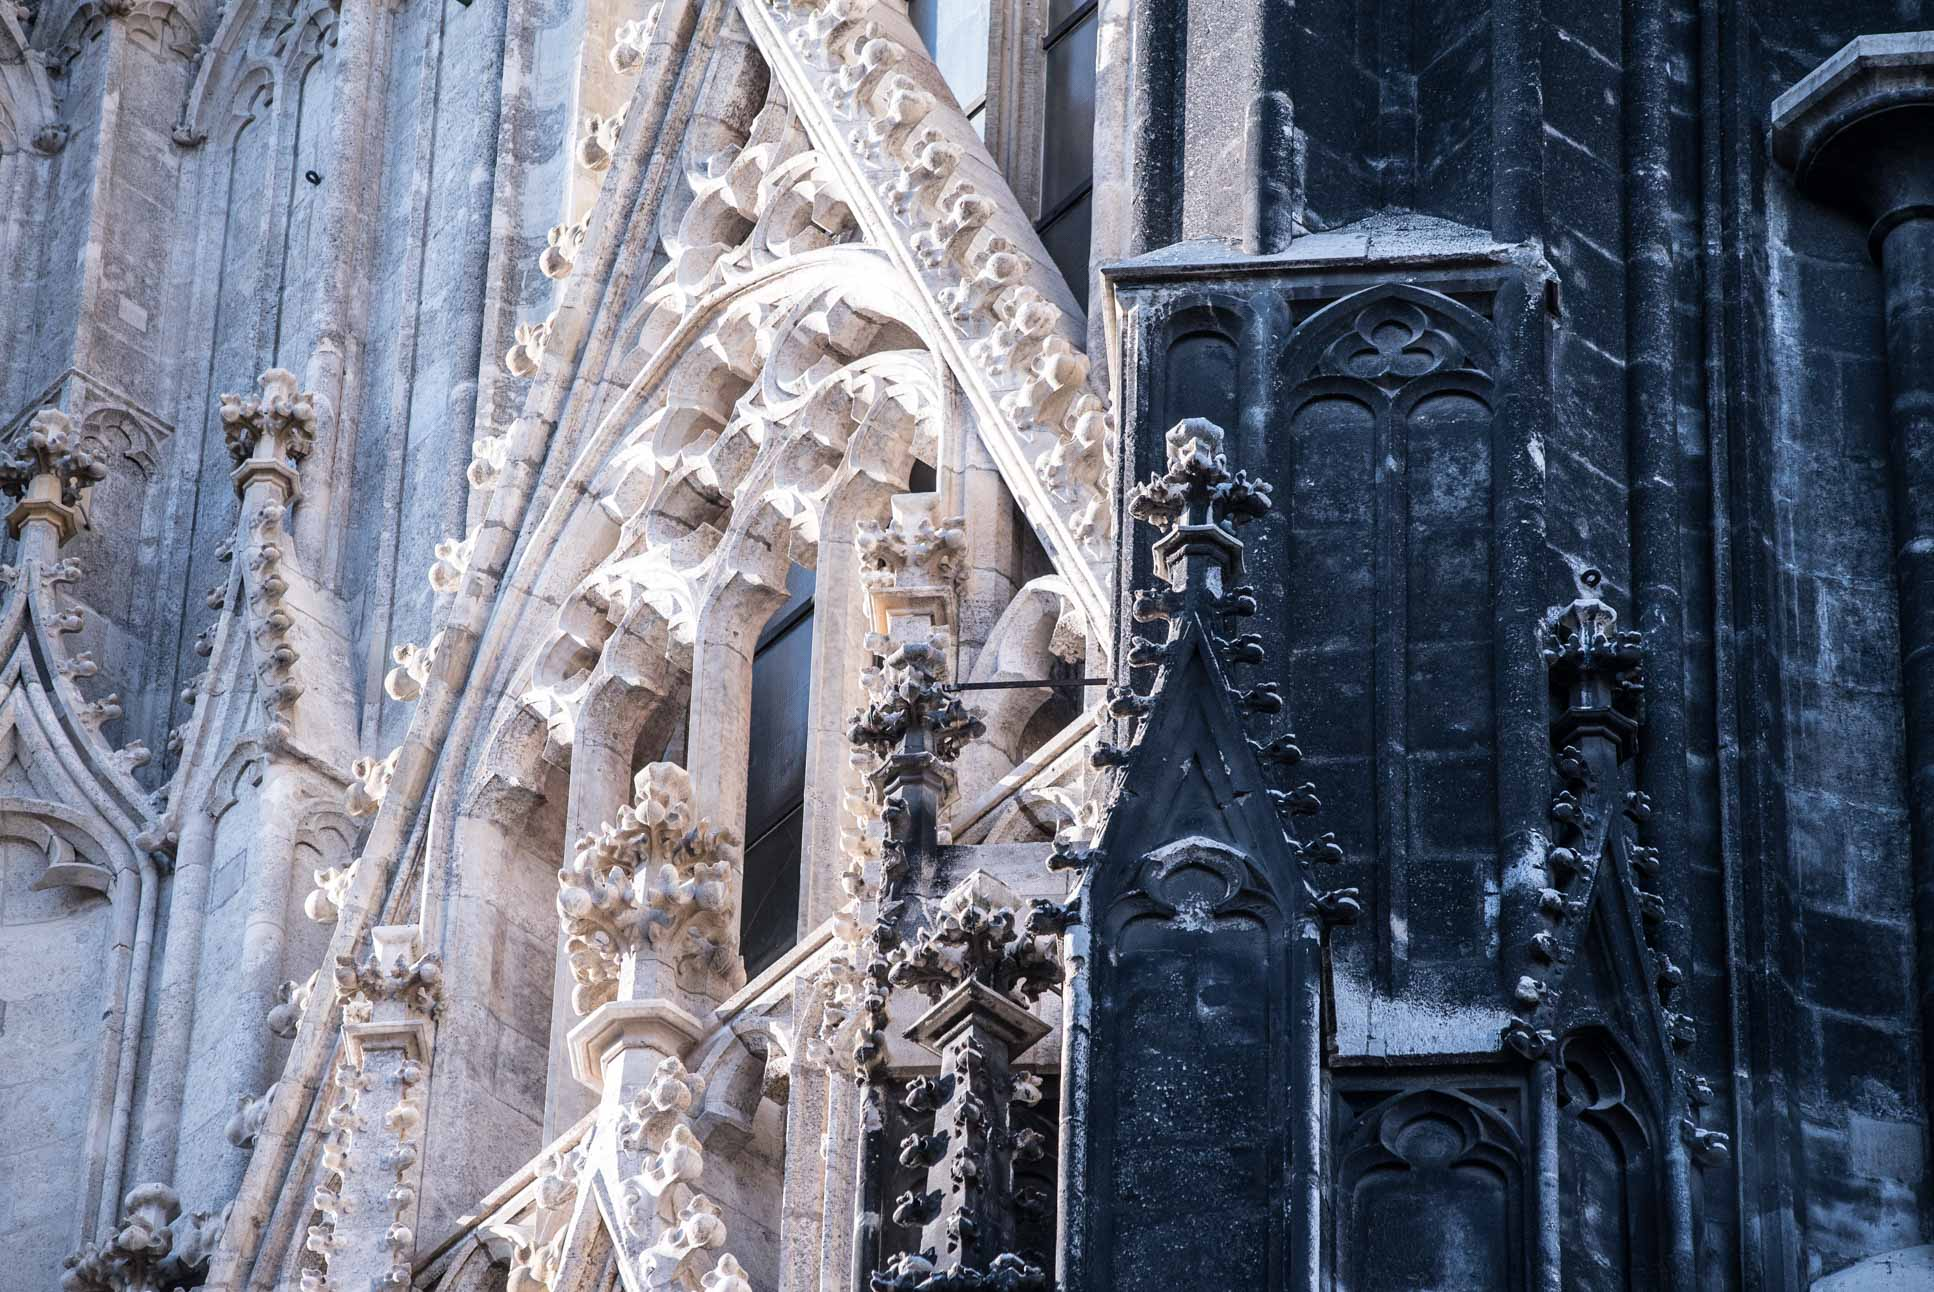 Photo by Pascal Sommer - Domkirche St. Stephan in Vienna's centre